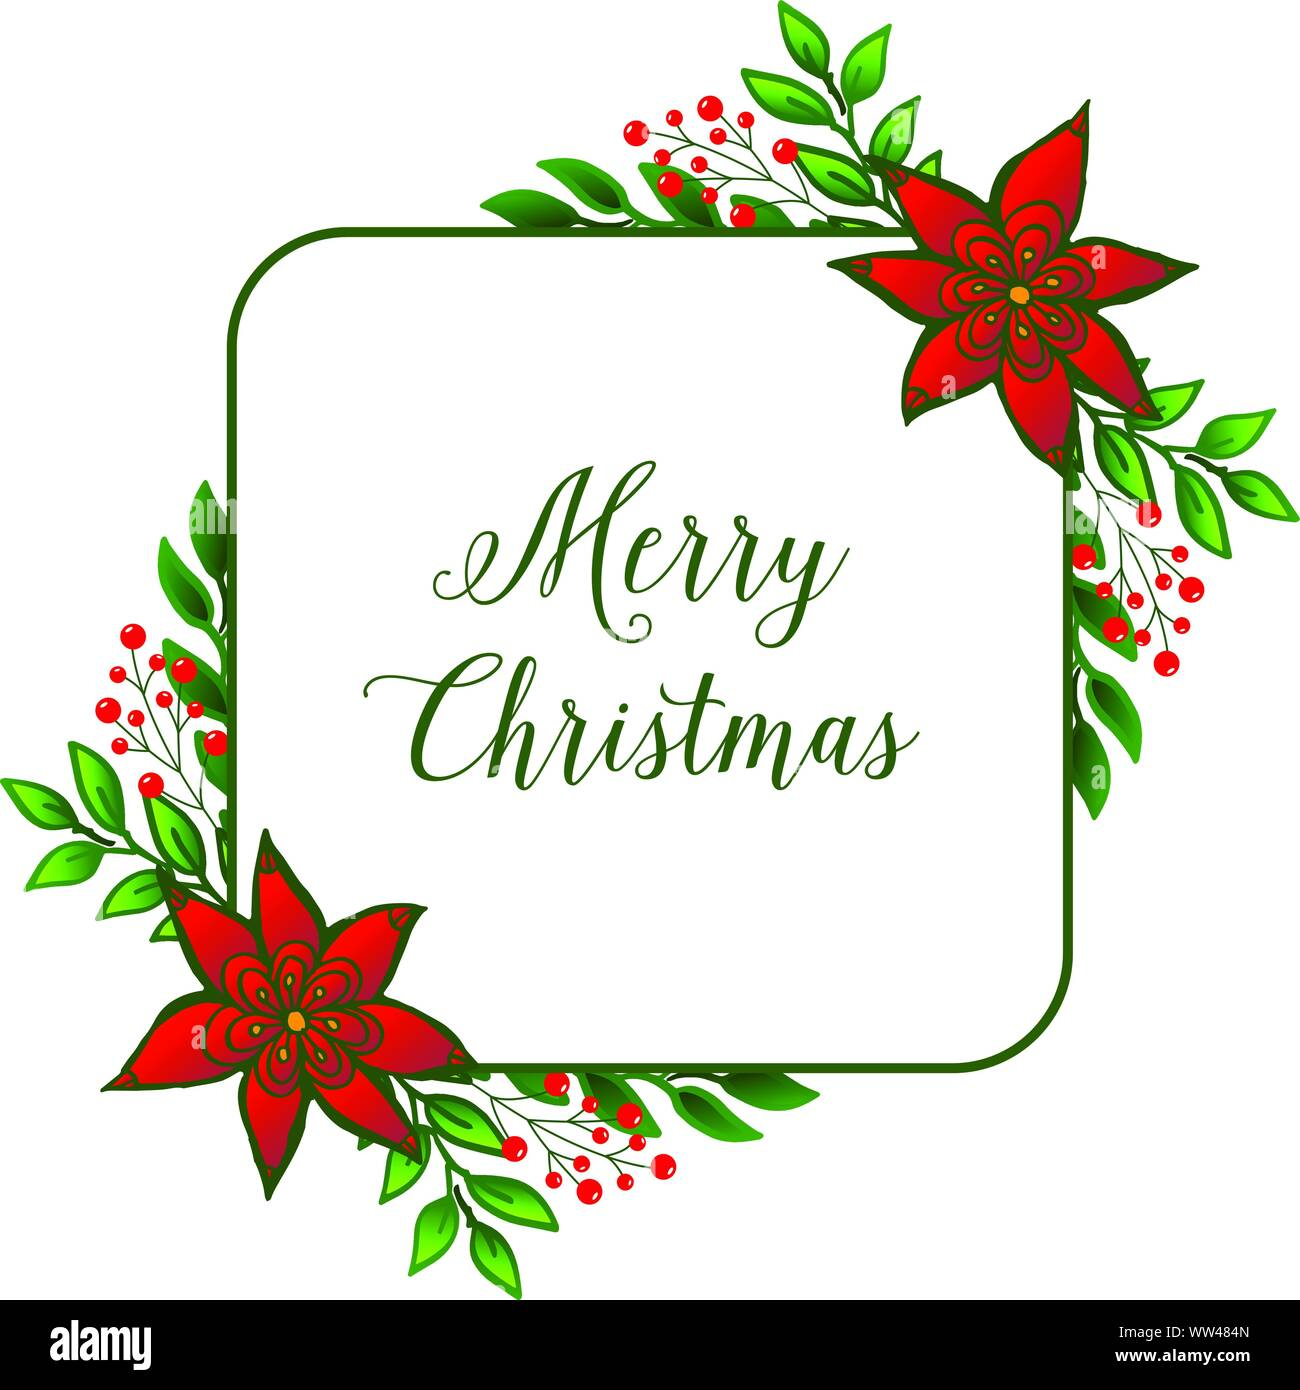 Christmas Celebration Images For Drawing.Lettering Celebration Of Merry Christmas Drawing Of Red